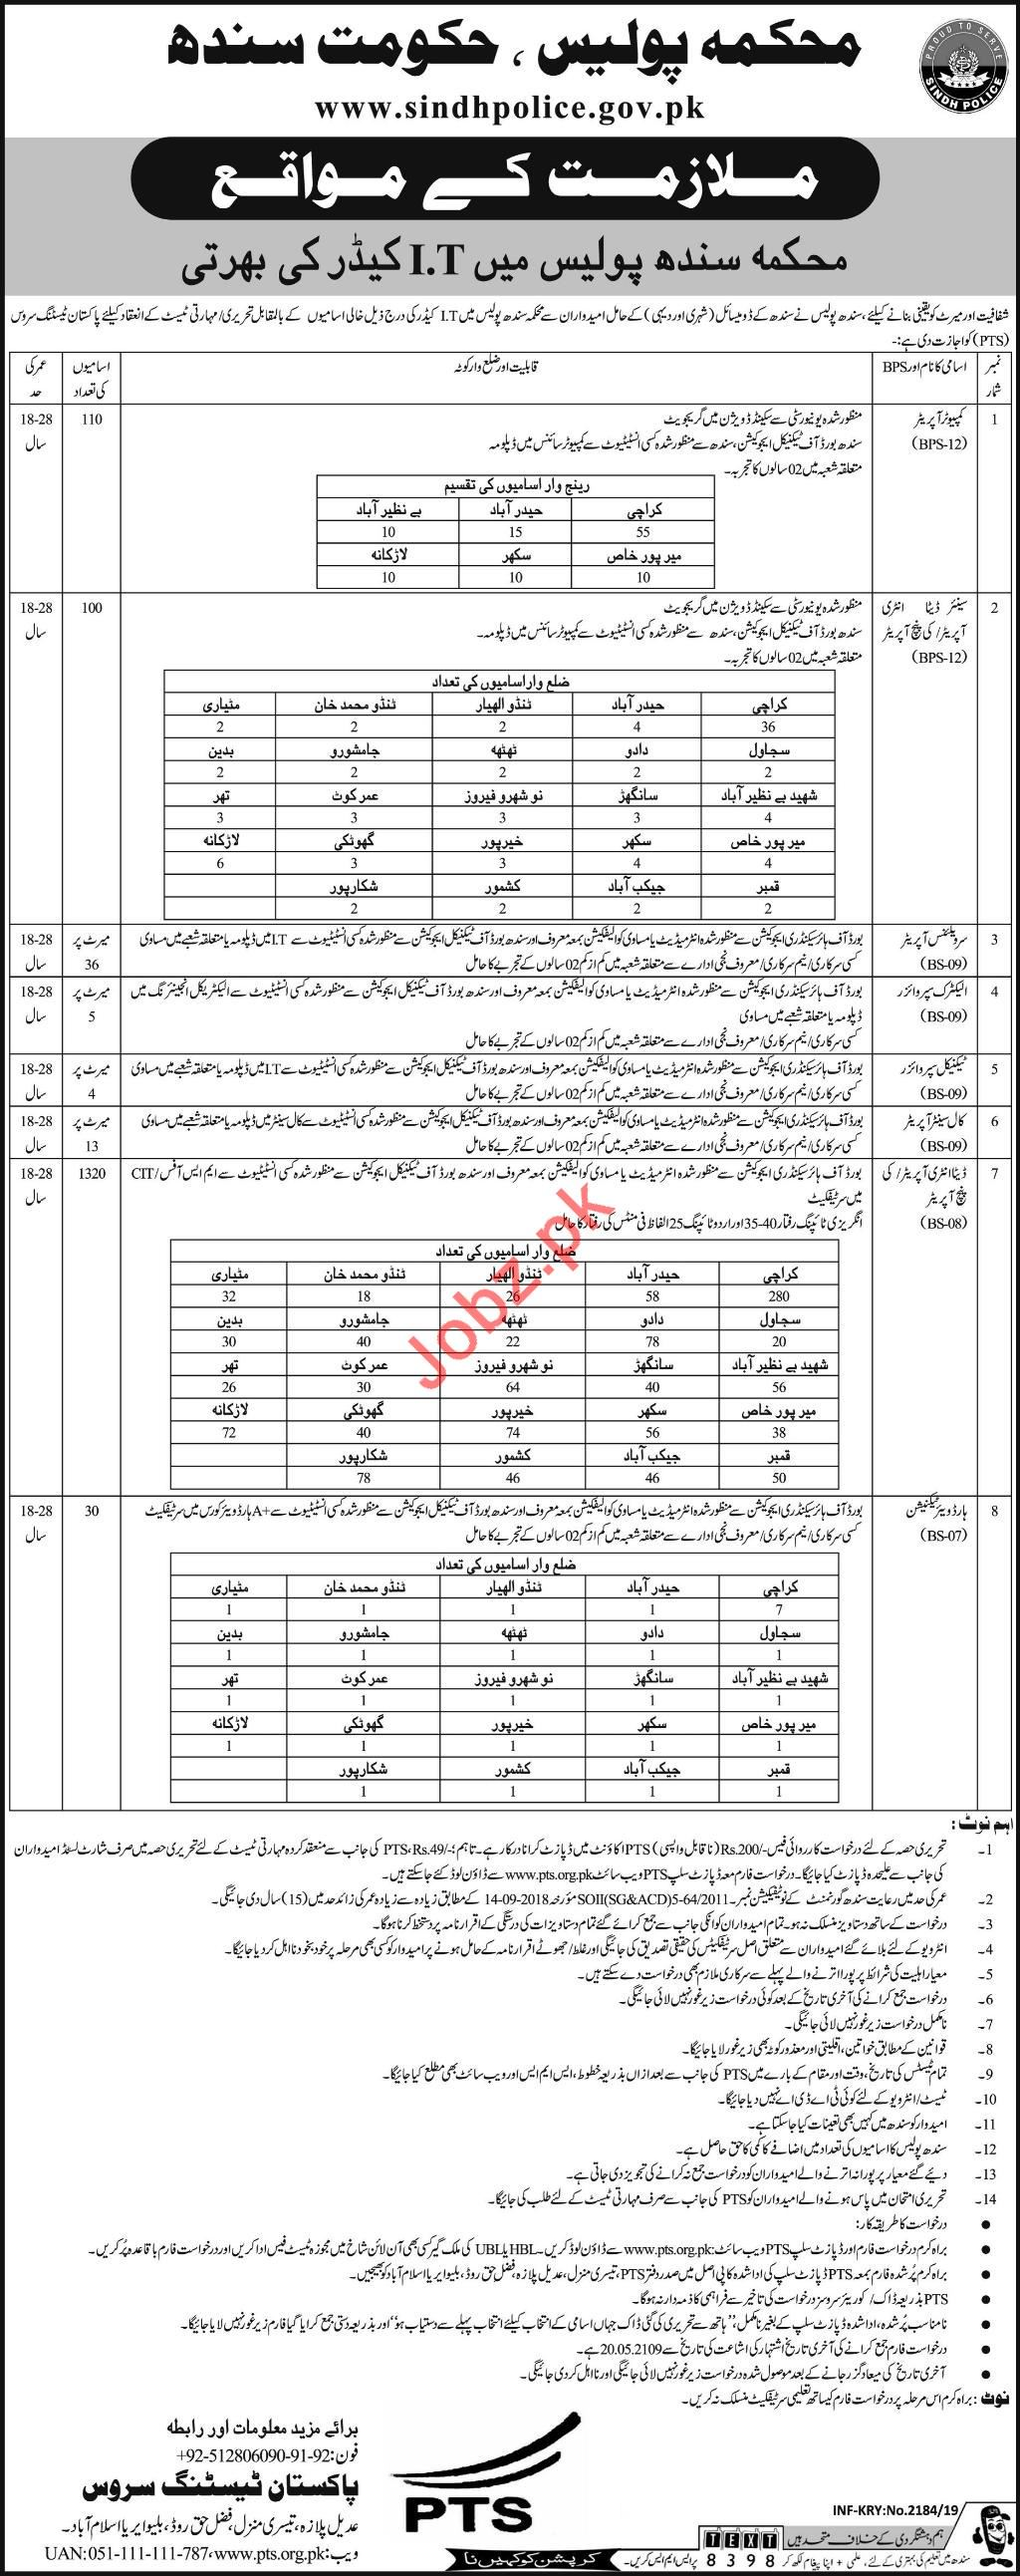 Sindh Police Department IT cader Jobs Via PTS